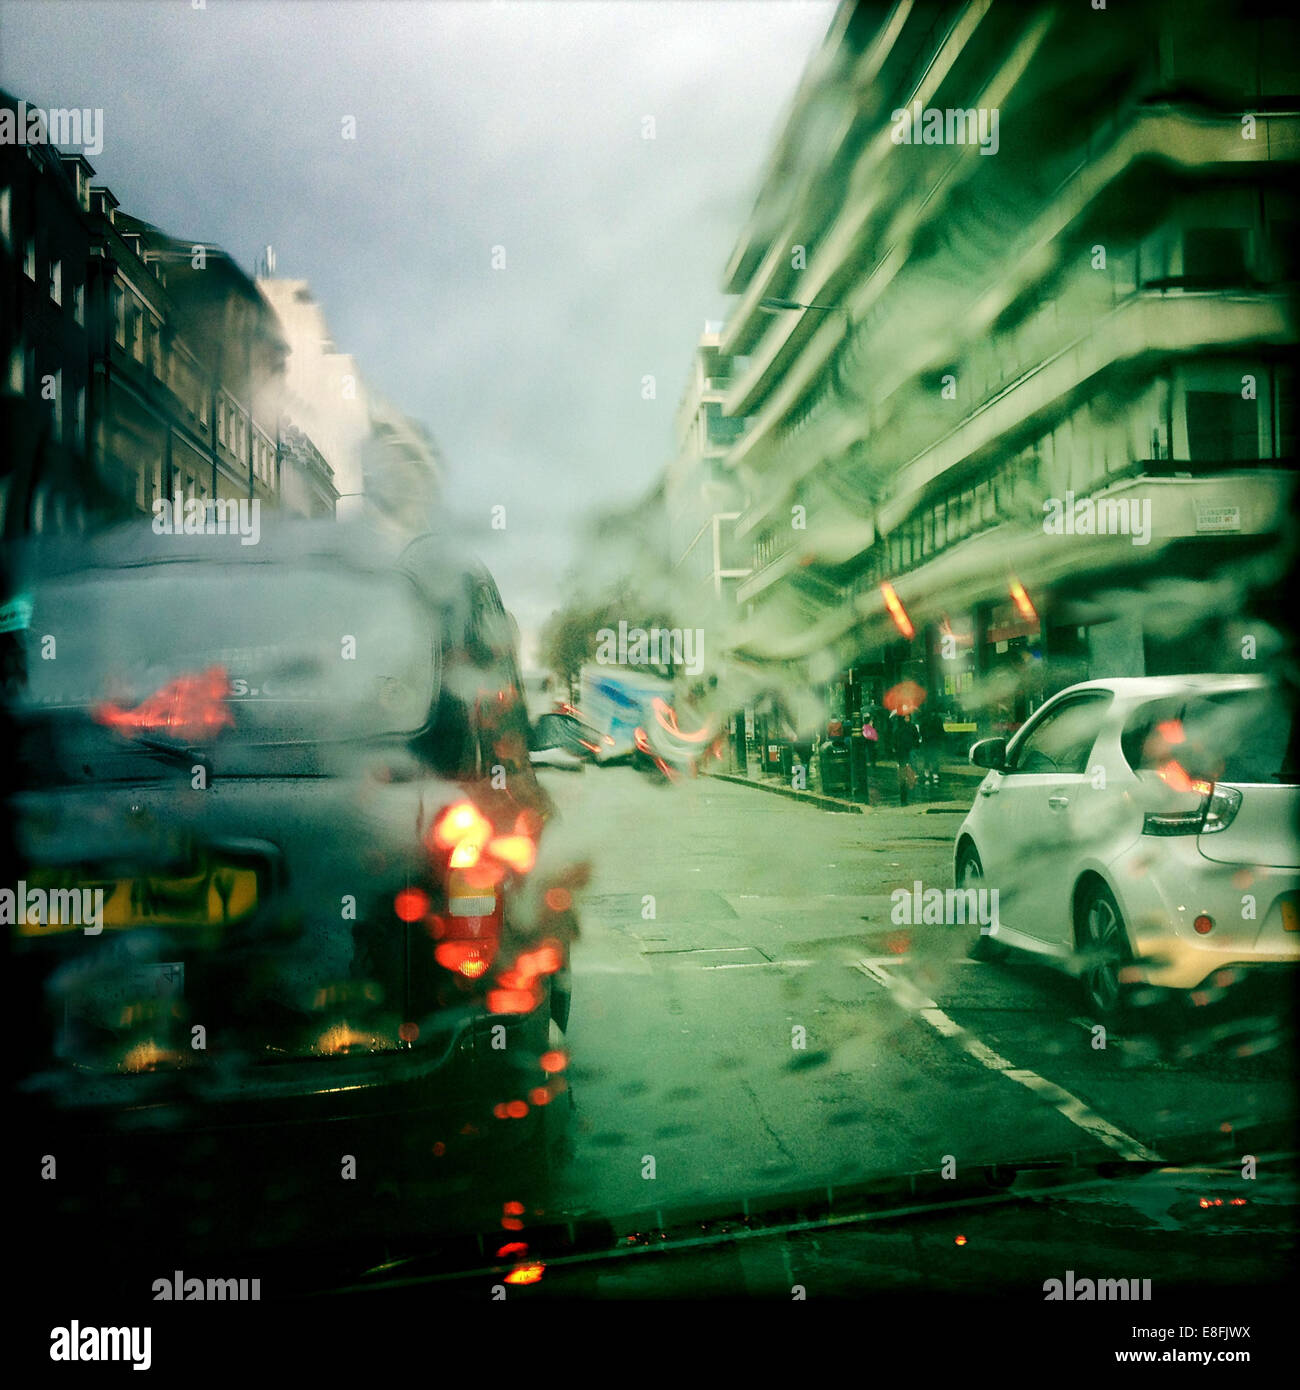 UK, London, Westminster, Knightsbridge, Taxi and car in wet weather - Stock Image